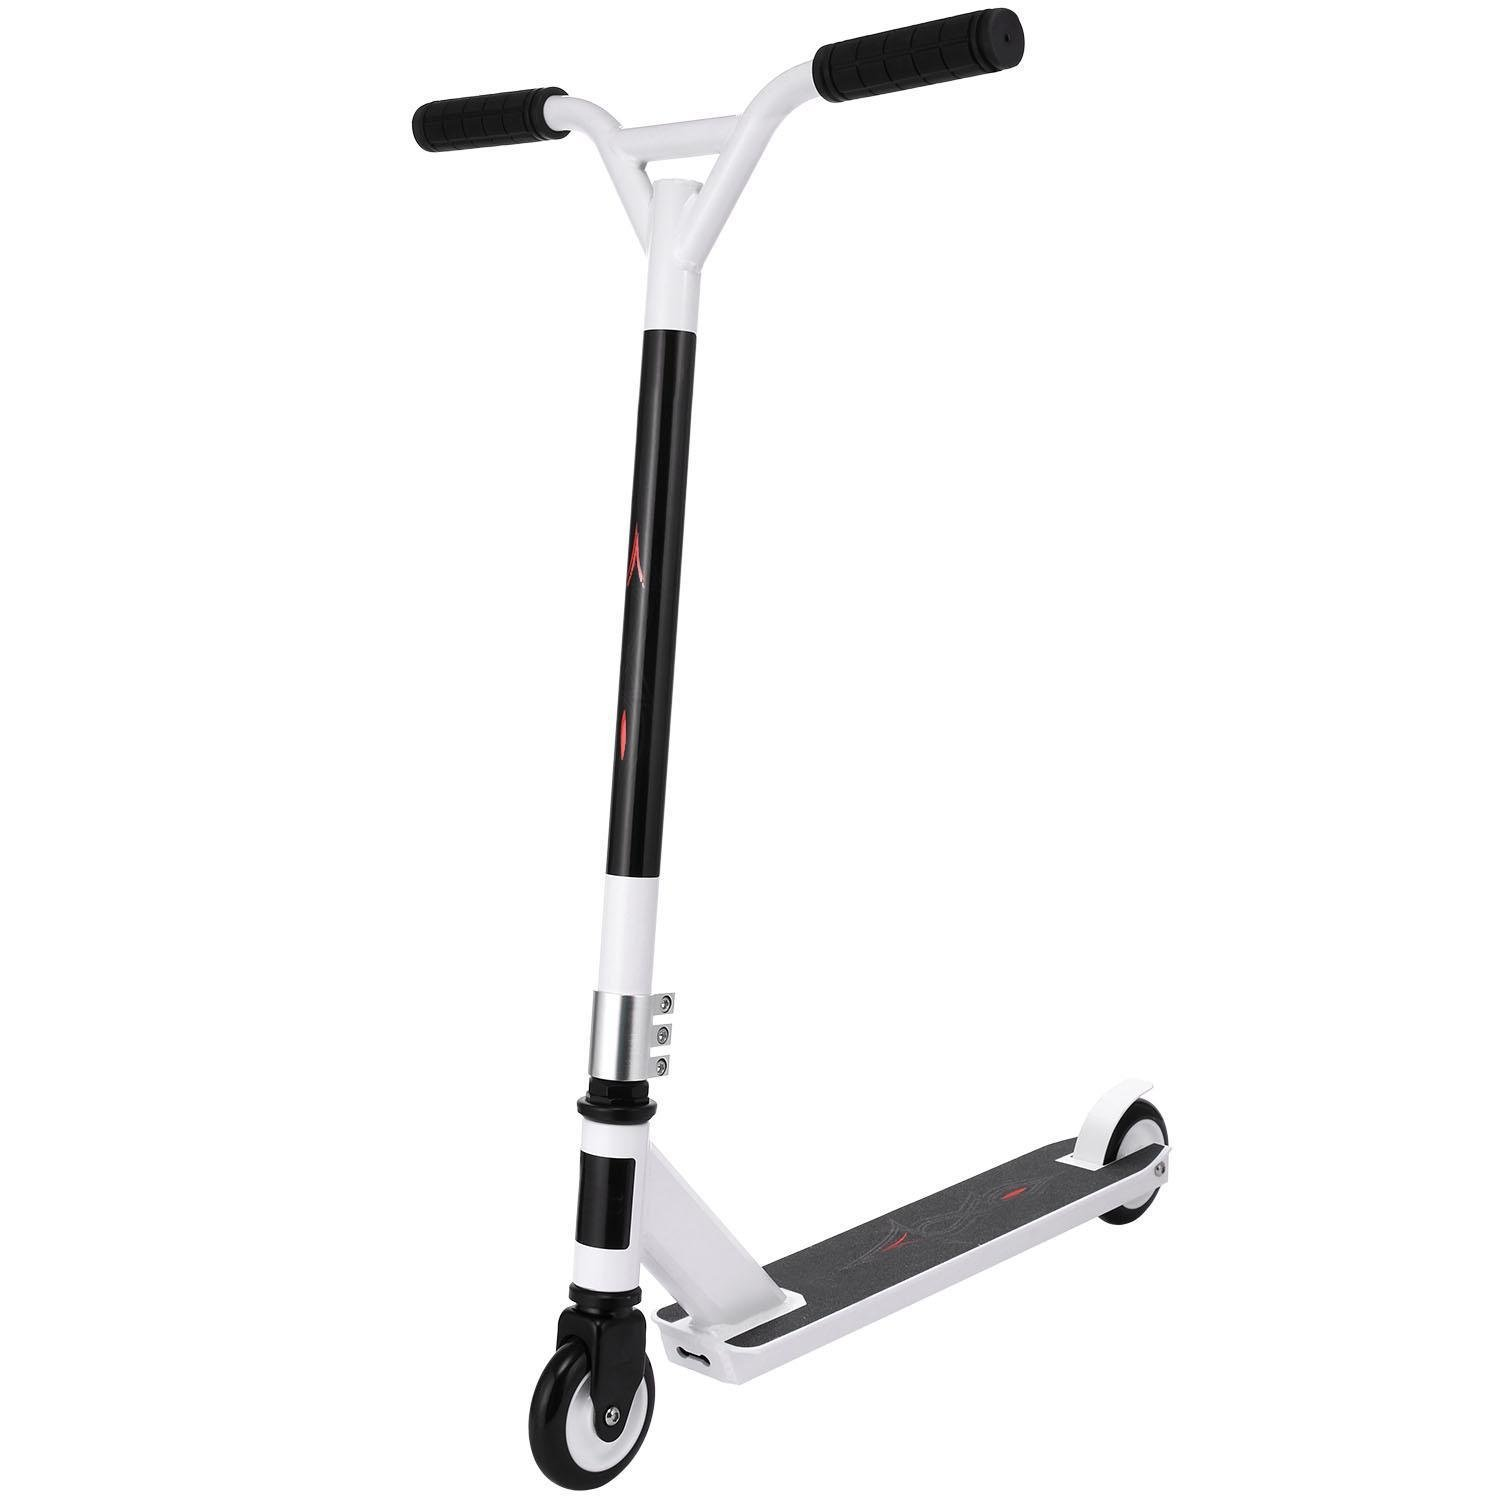 Kaluo Pro Compact Freestyle Stunt Scooter Best Gifts for Teens (White ABS Wheel Core)